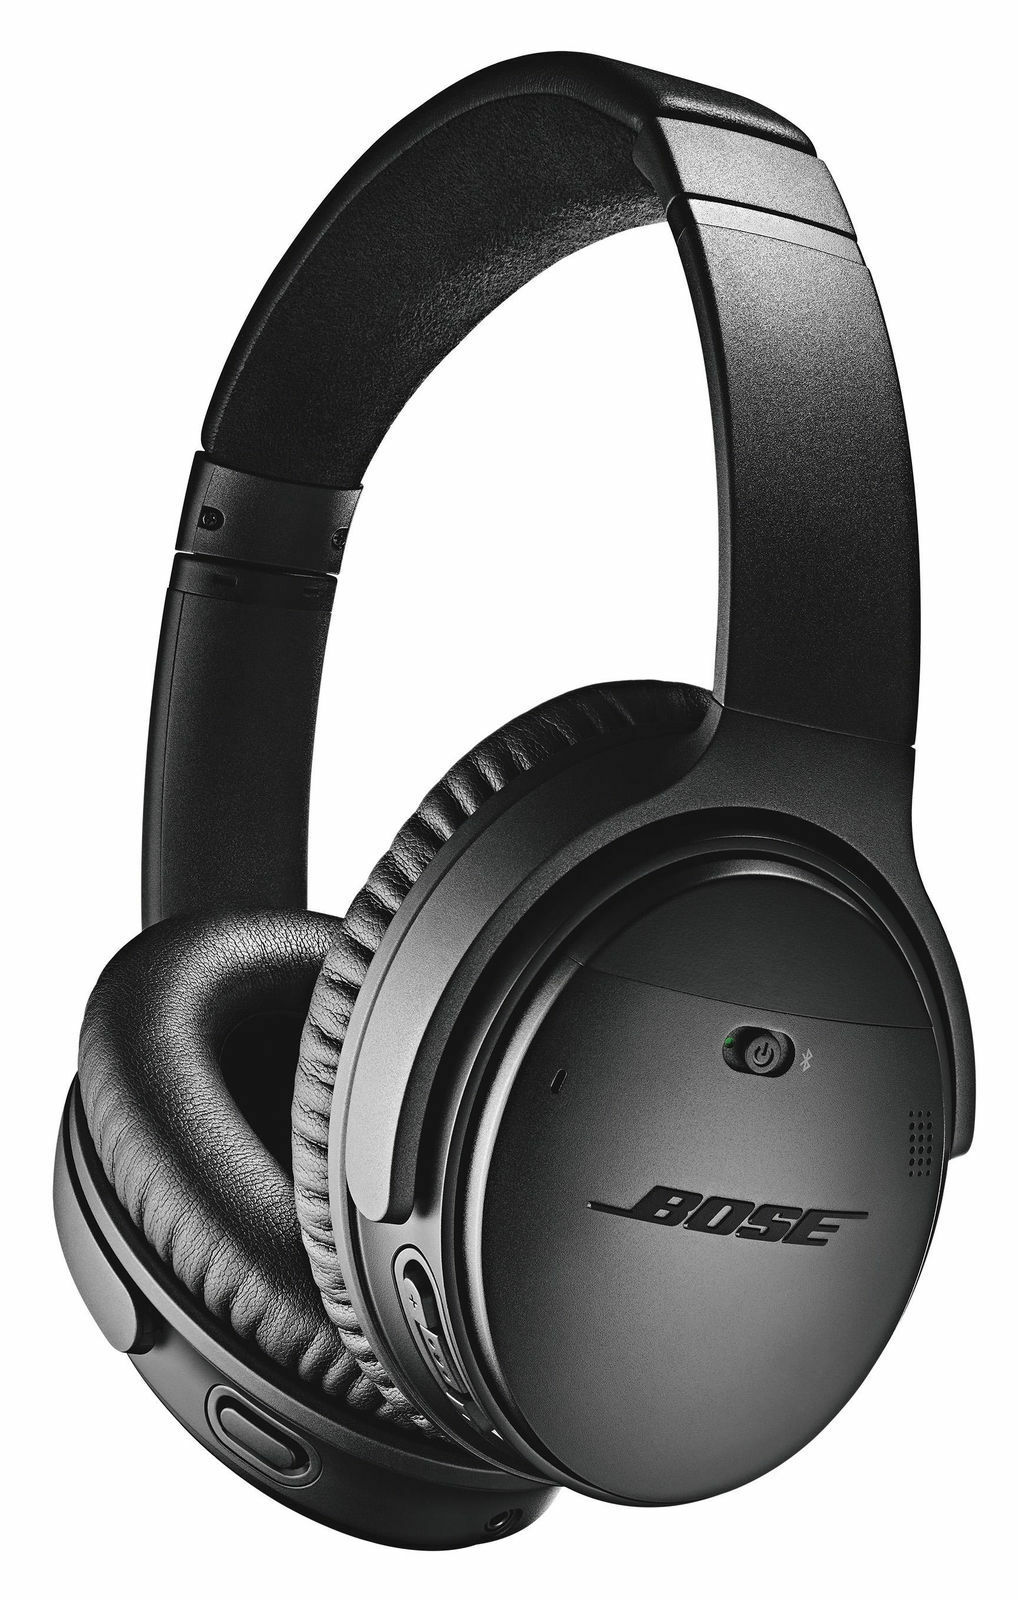 Bose QuietComfort 35 II Black Over the Head Headsets for sale online ... acd95ff6604ff